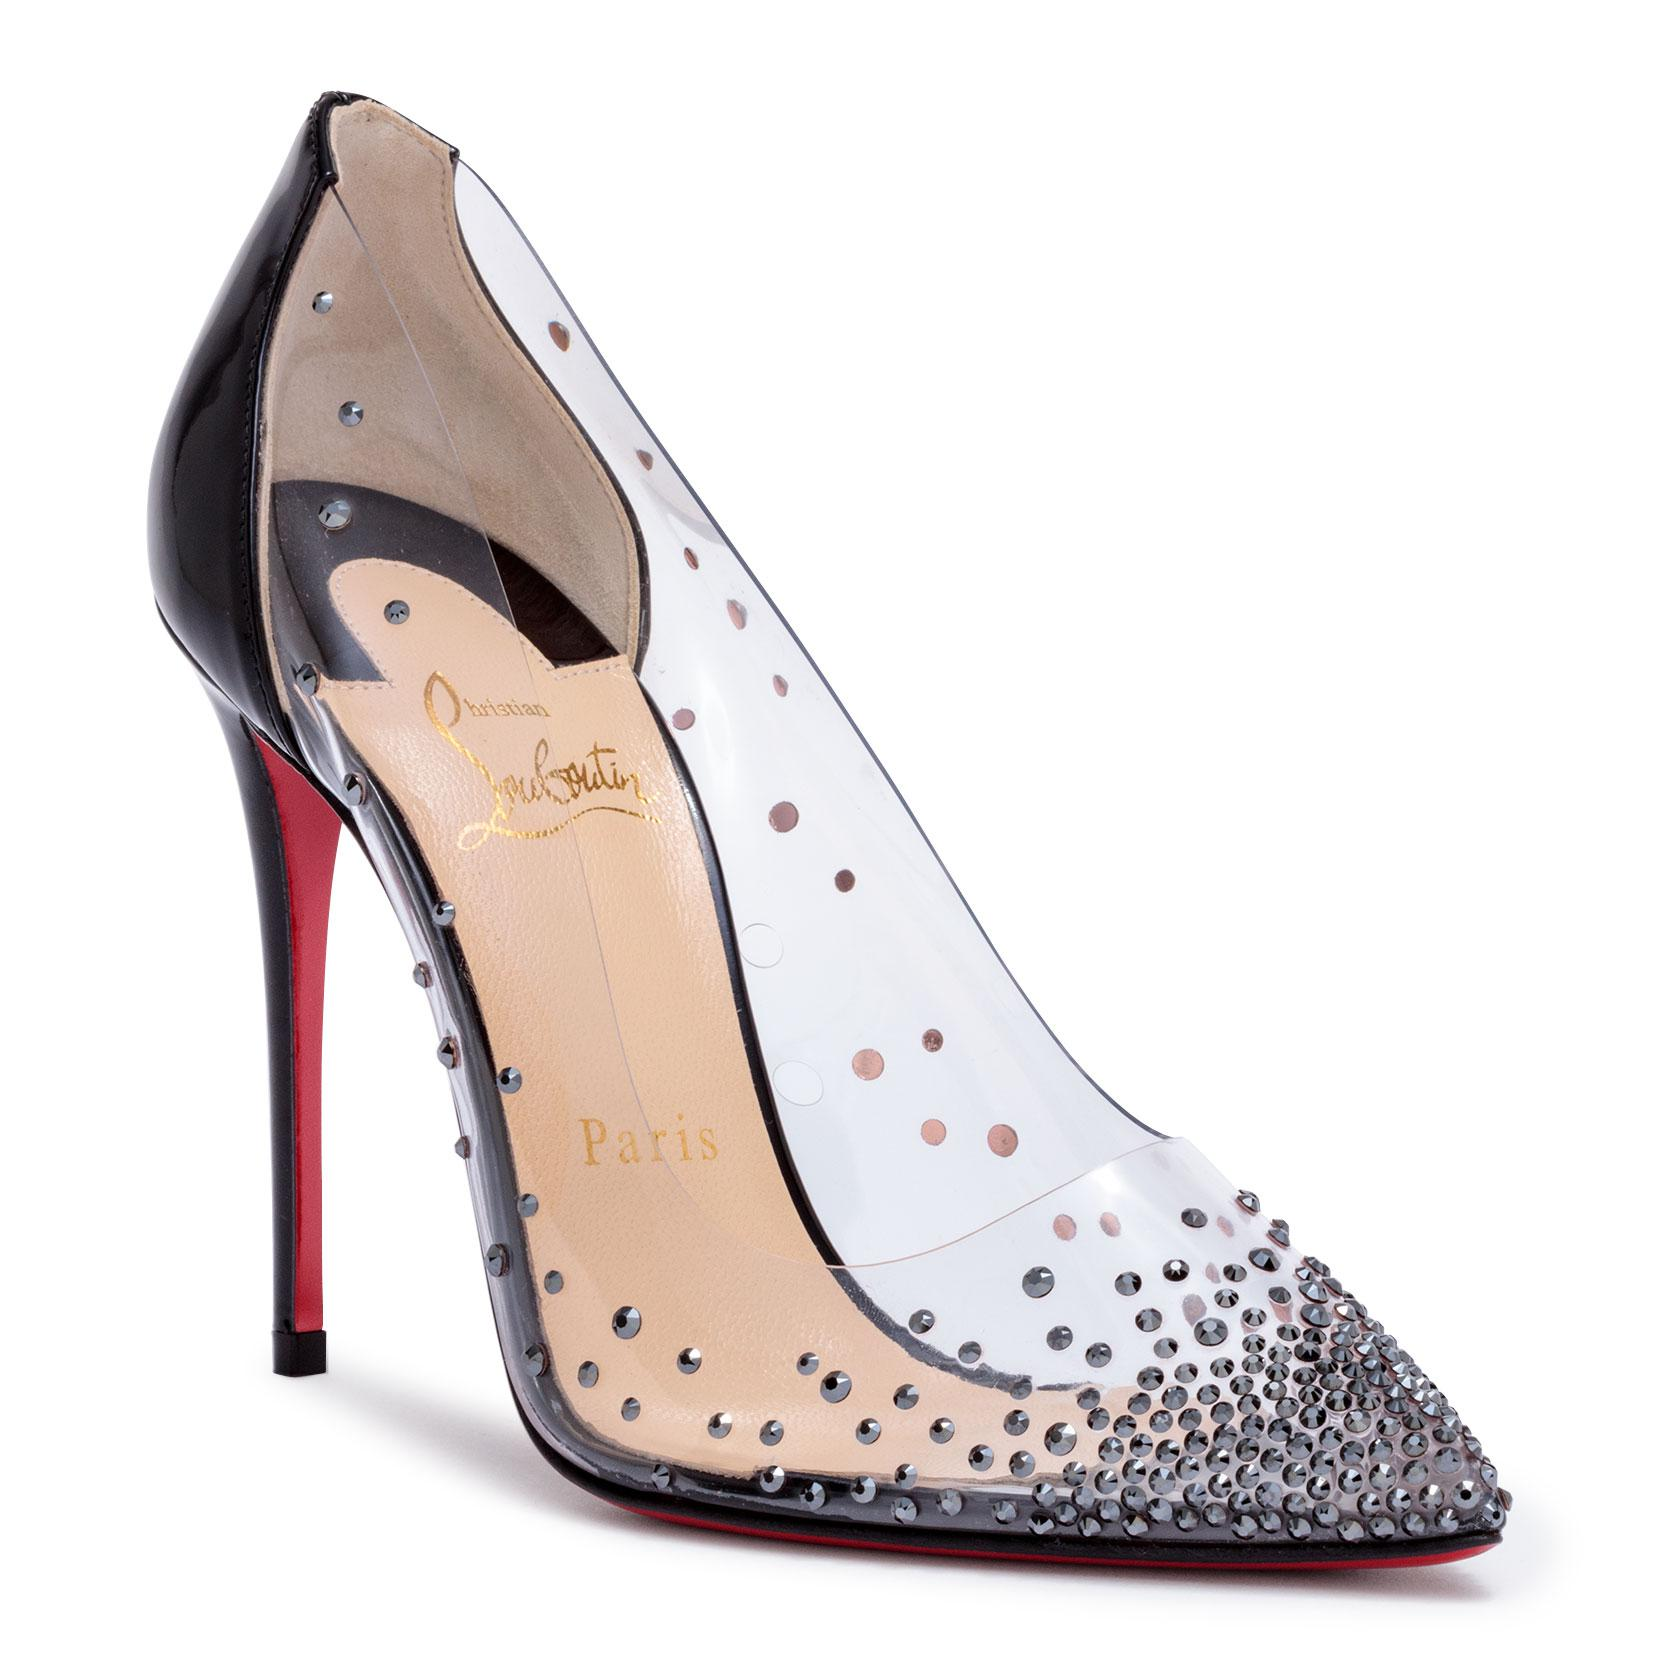 Degrastrass 100 silver patent pumps Christian Louboutin